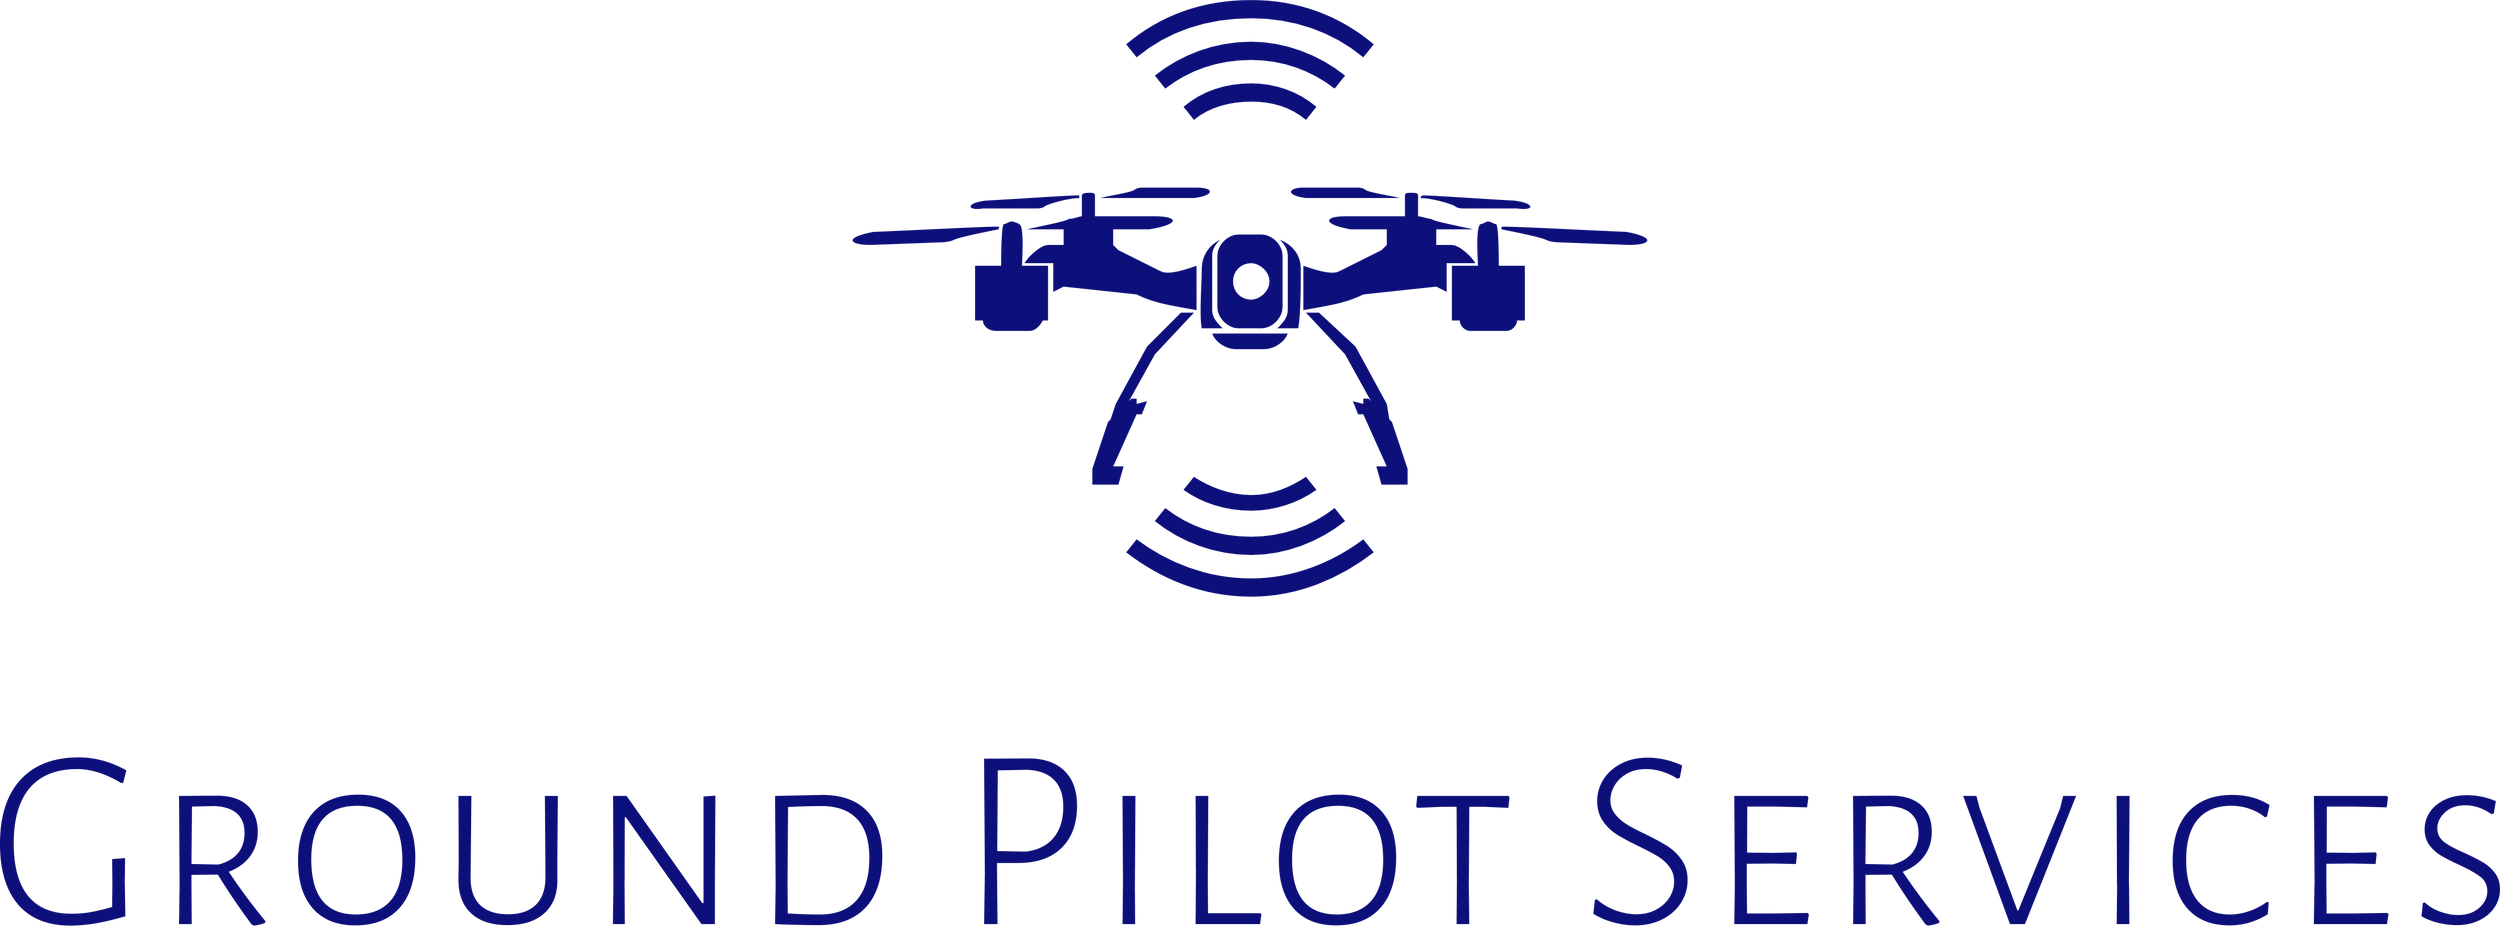 About Us | Ground Pilot Services | Drone Professionals